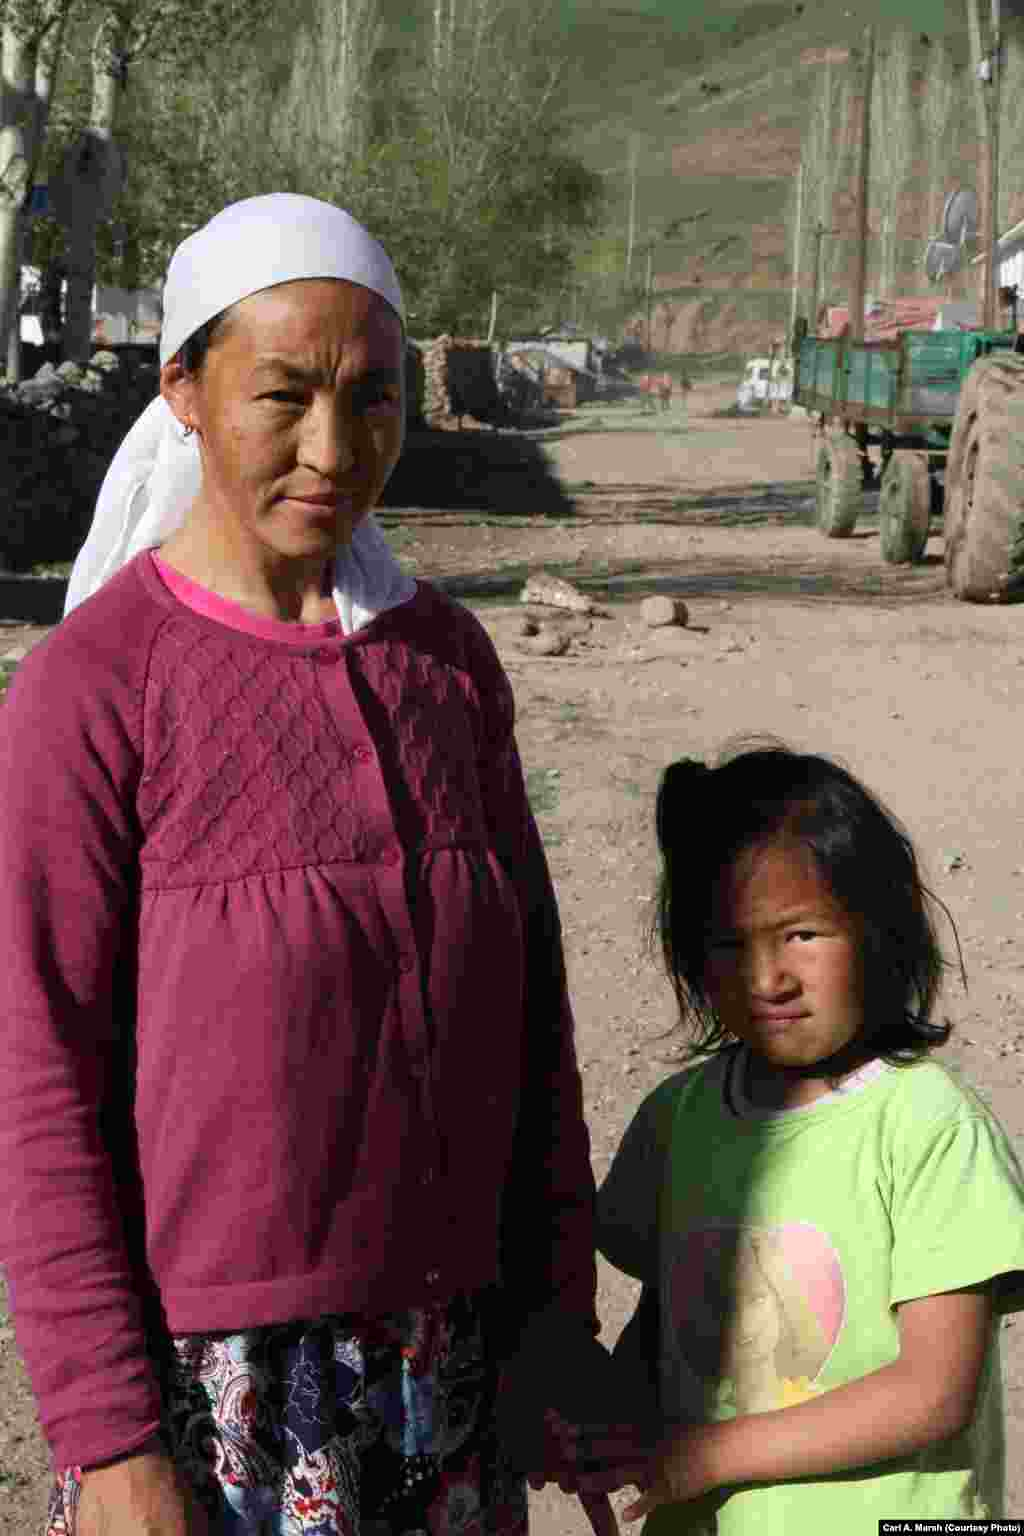 Asil and her daughter, Semanur, one of four siblings. The children have learned the Kyrgyz language, as well as Turkish. The family plans to move to Istanbul to seek better educational opportunities for the children.